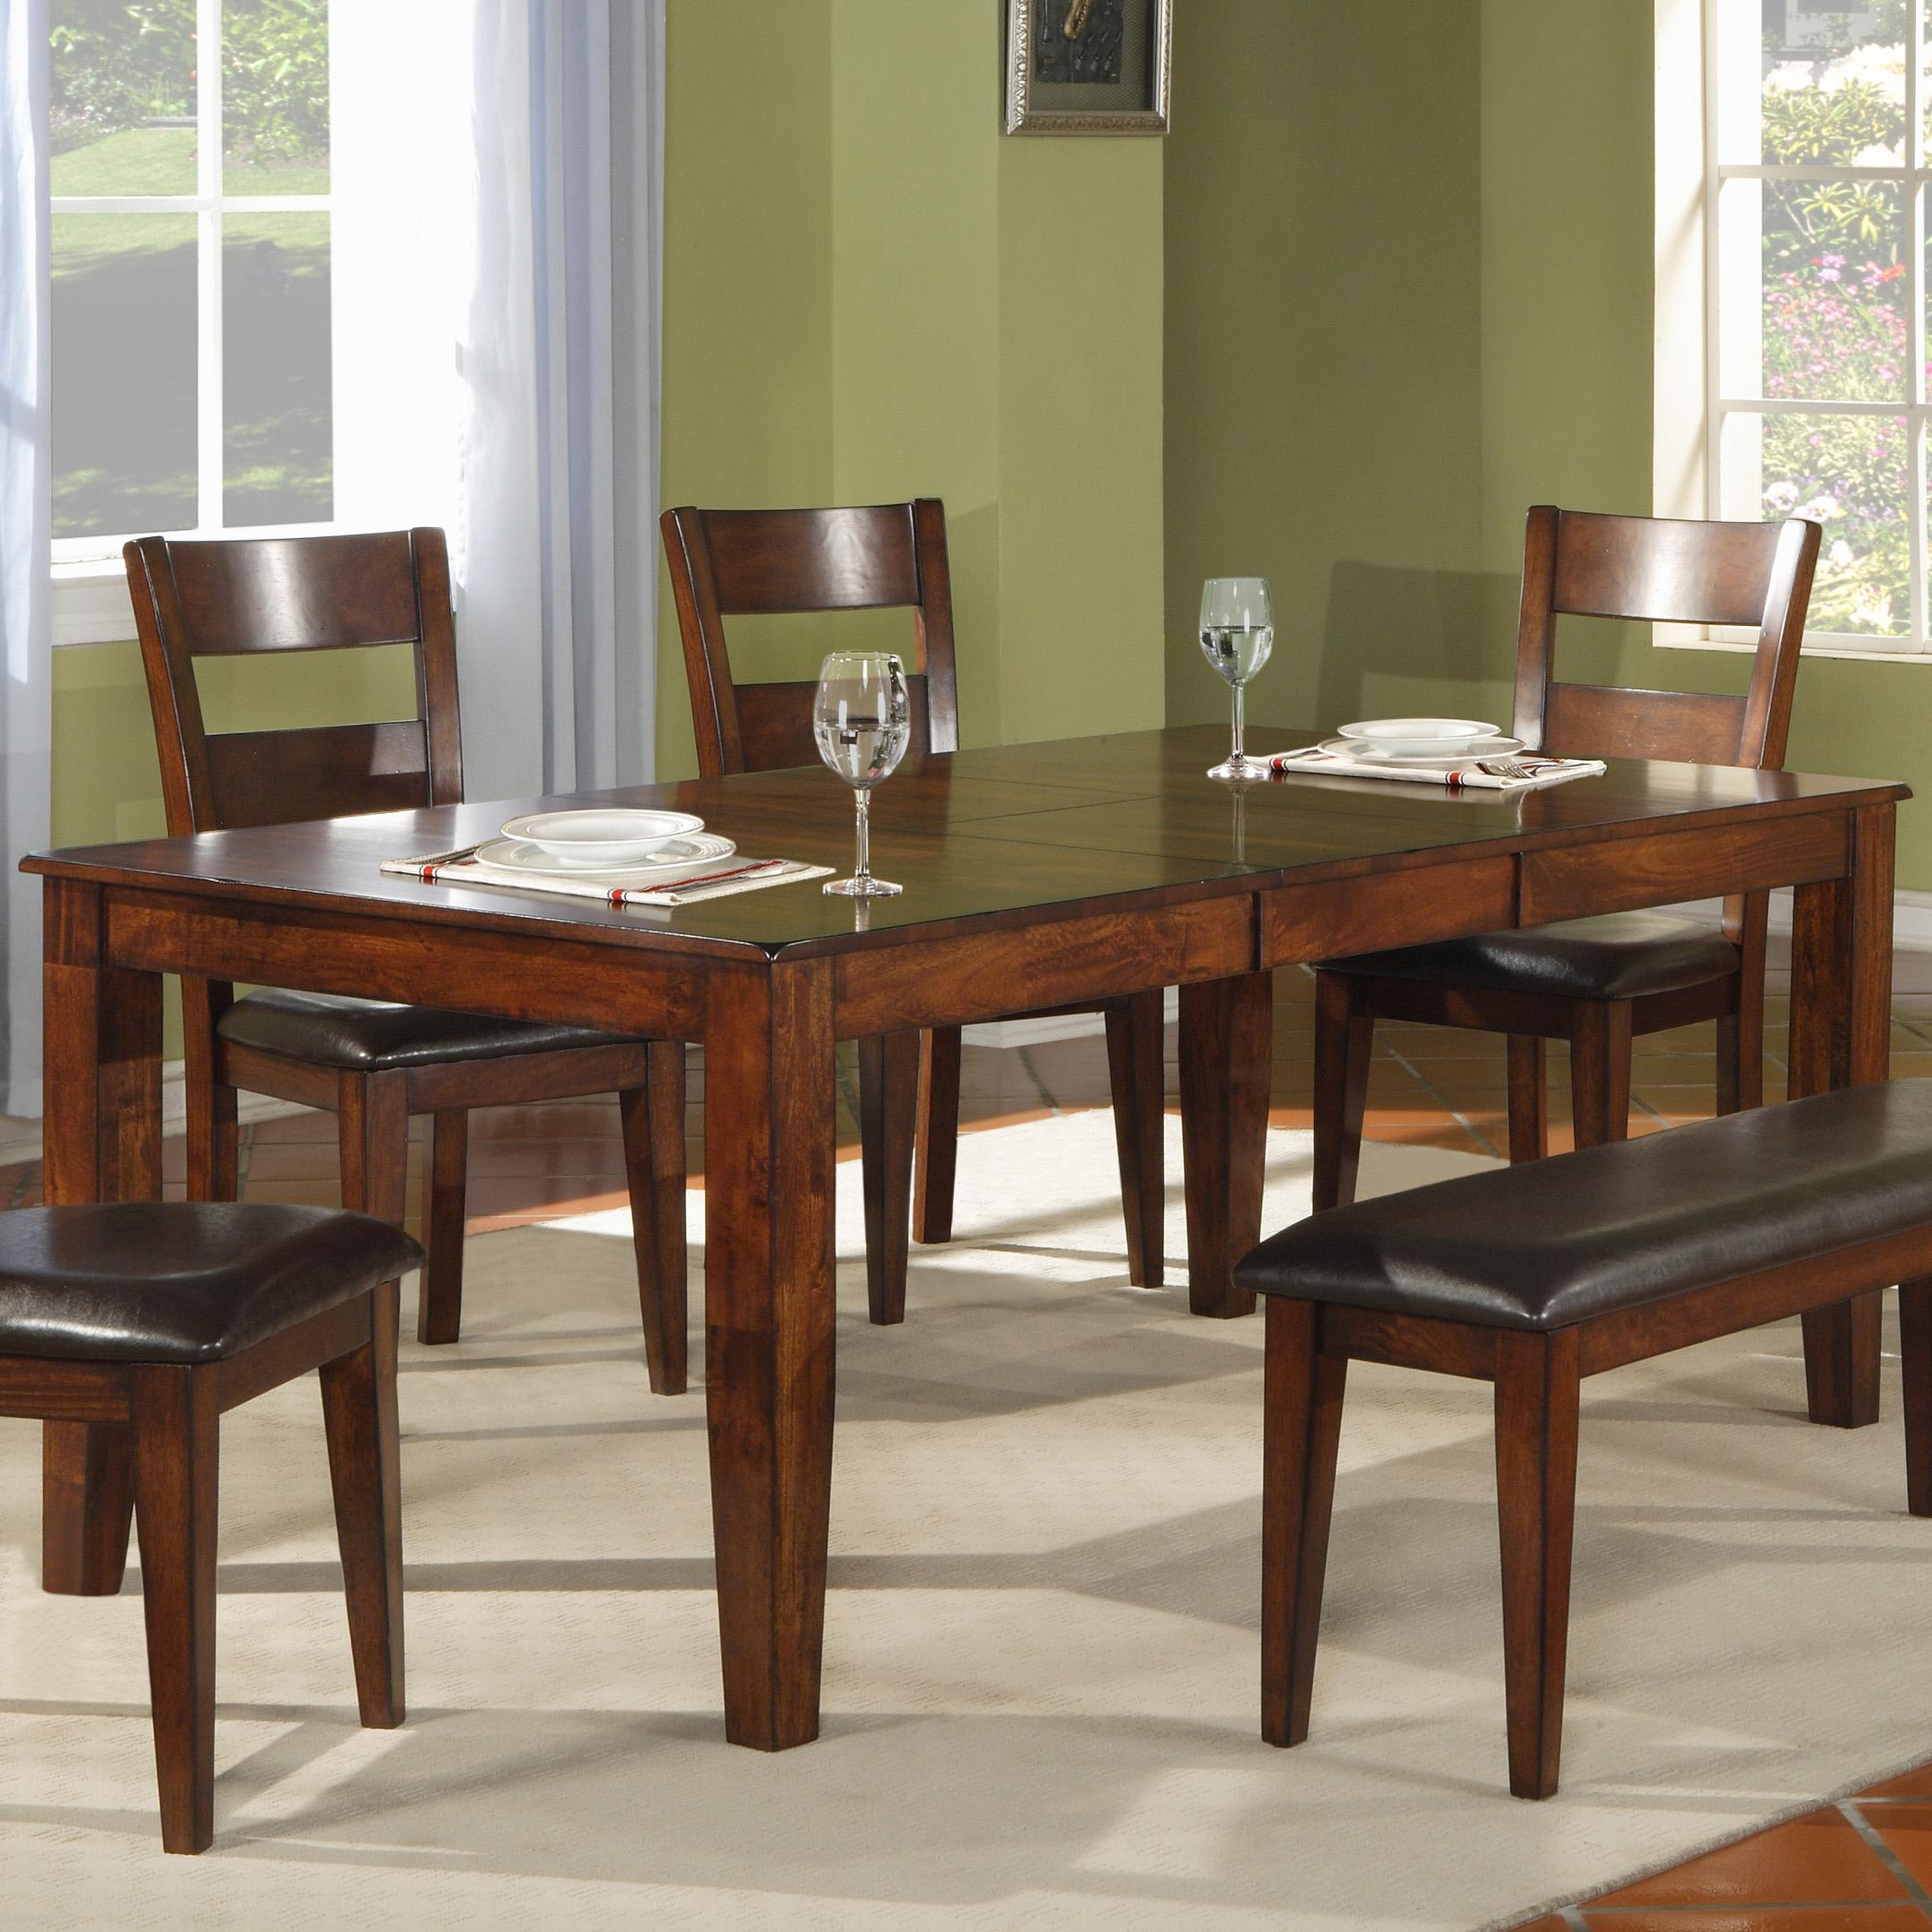 2017 Iron Dining Tables With Mango Wood In Holland House 1279 Modern Solid Mango Wood Dining Table (View 22 of 30)